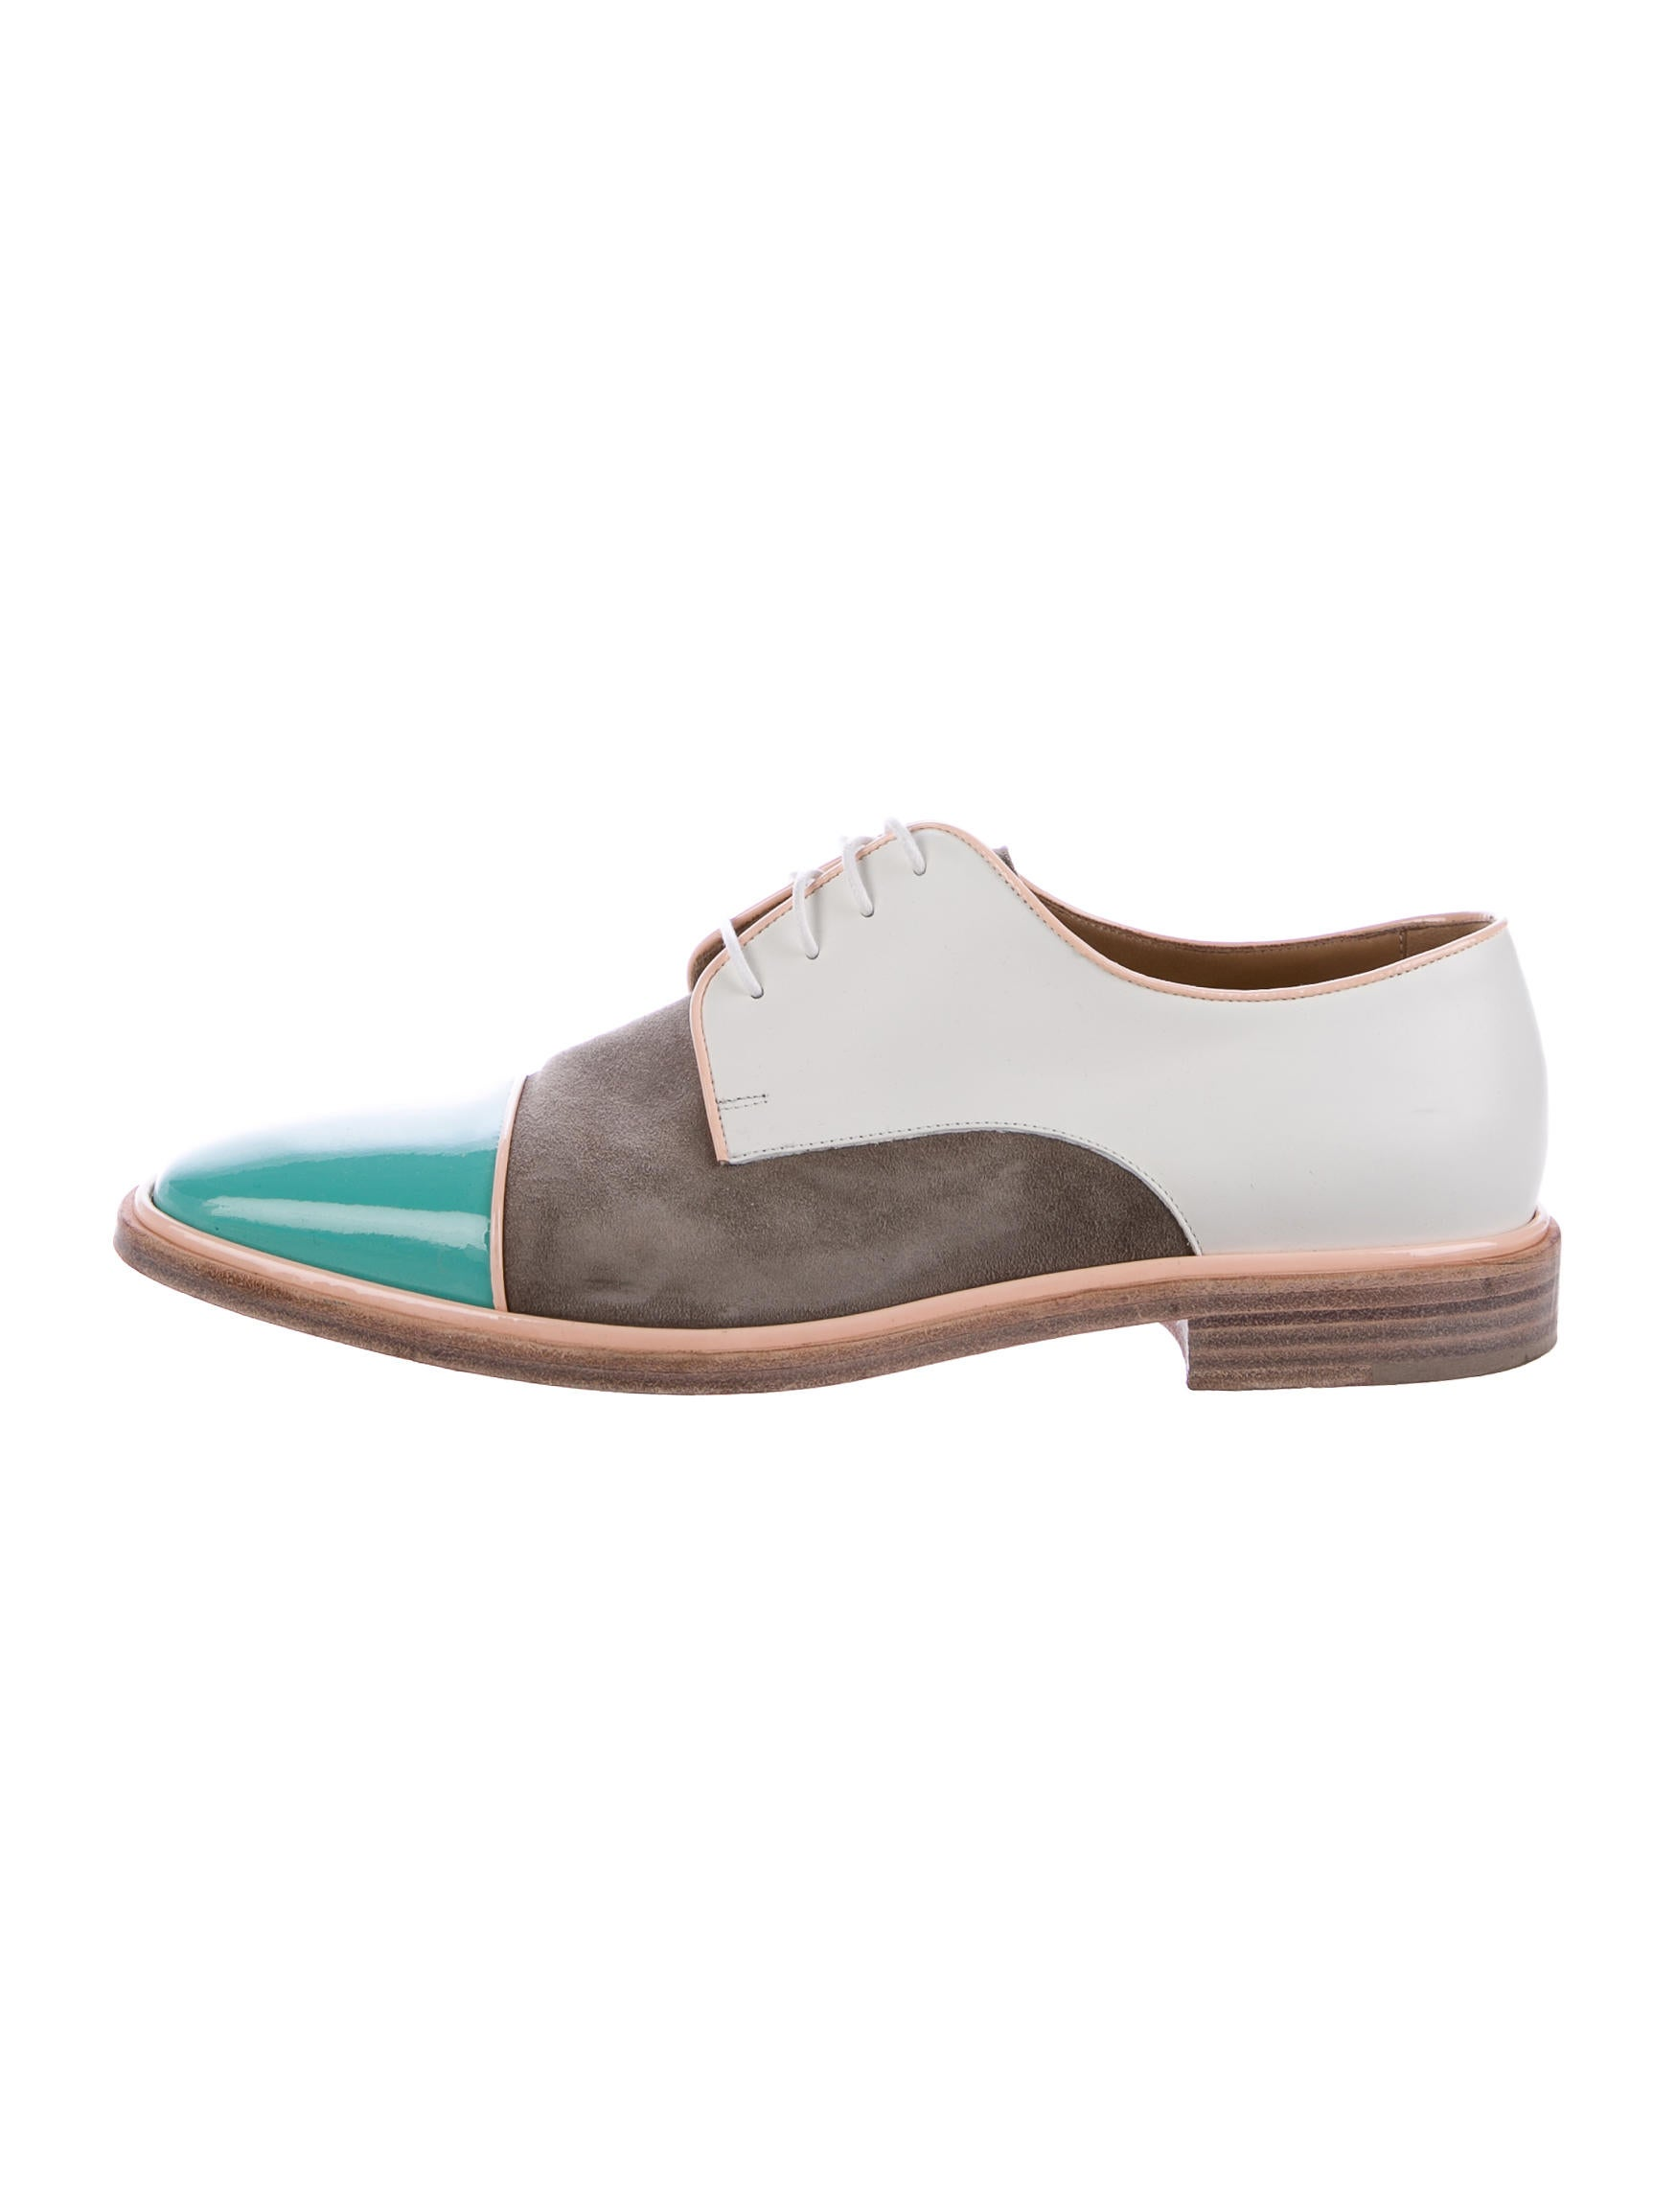 christian louboutin patent leather derby shoes shoes